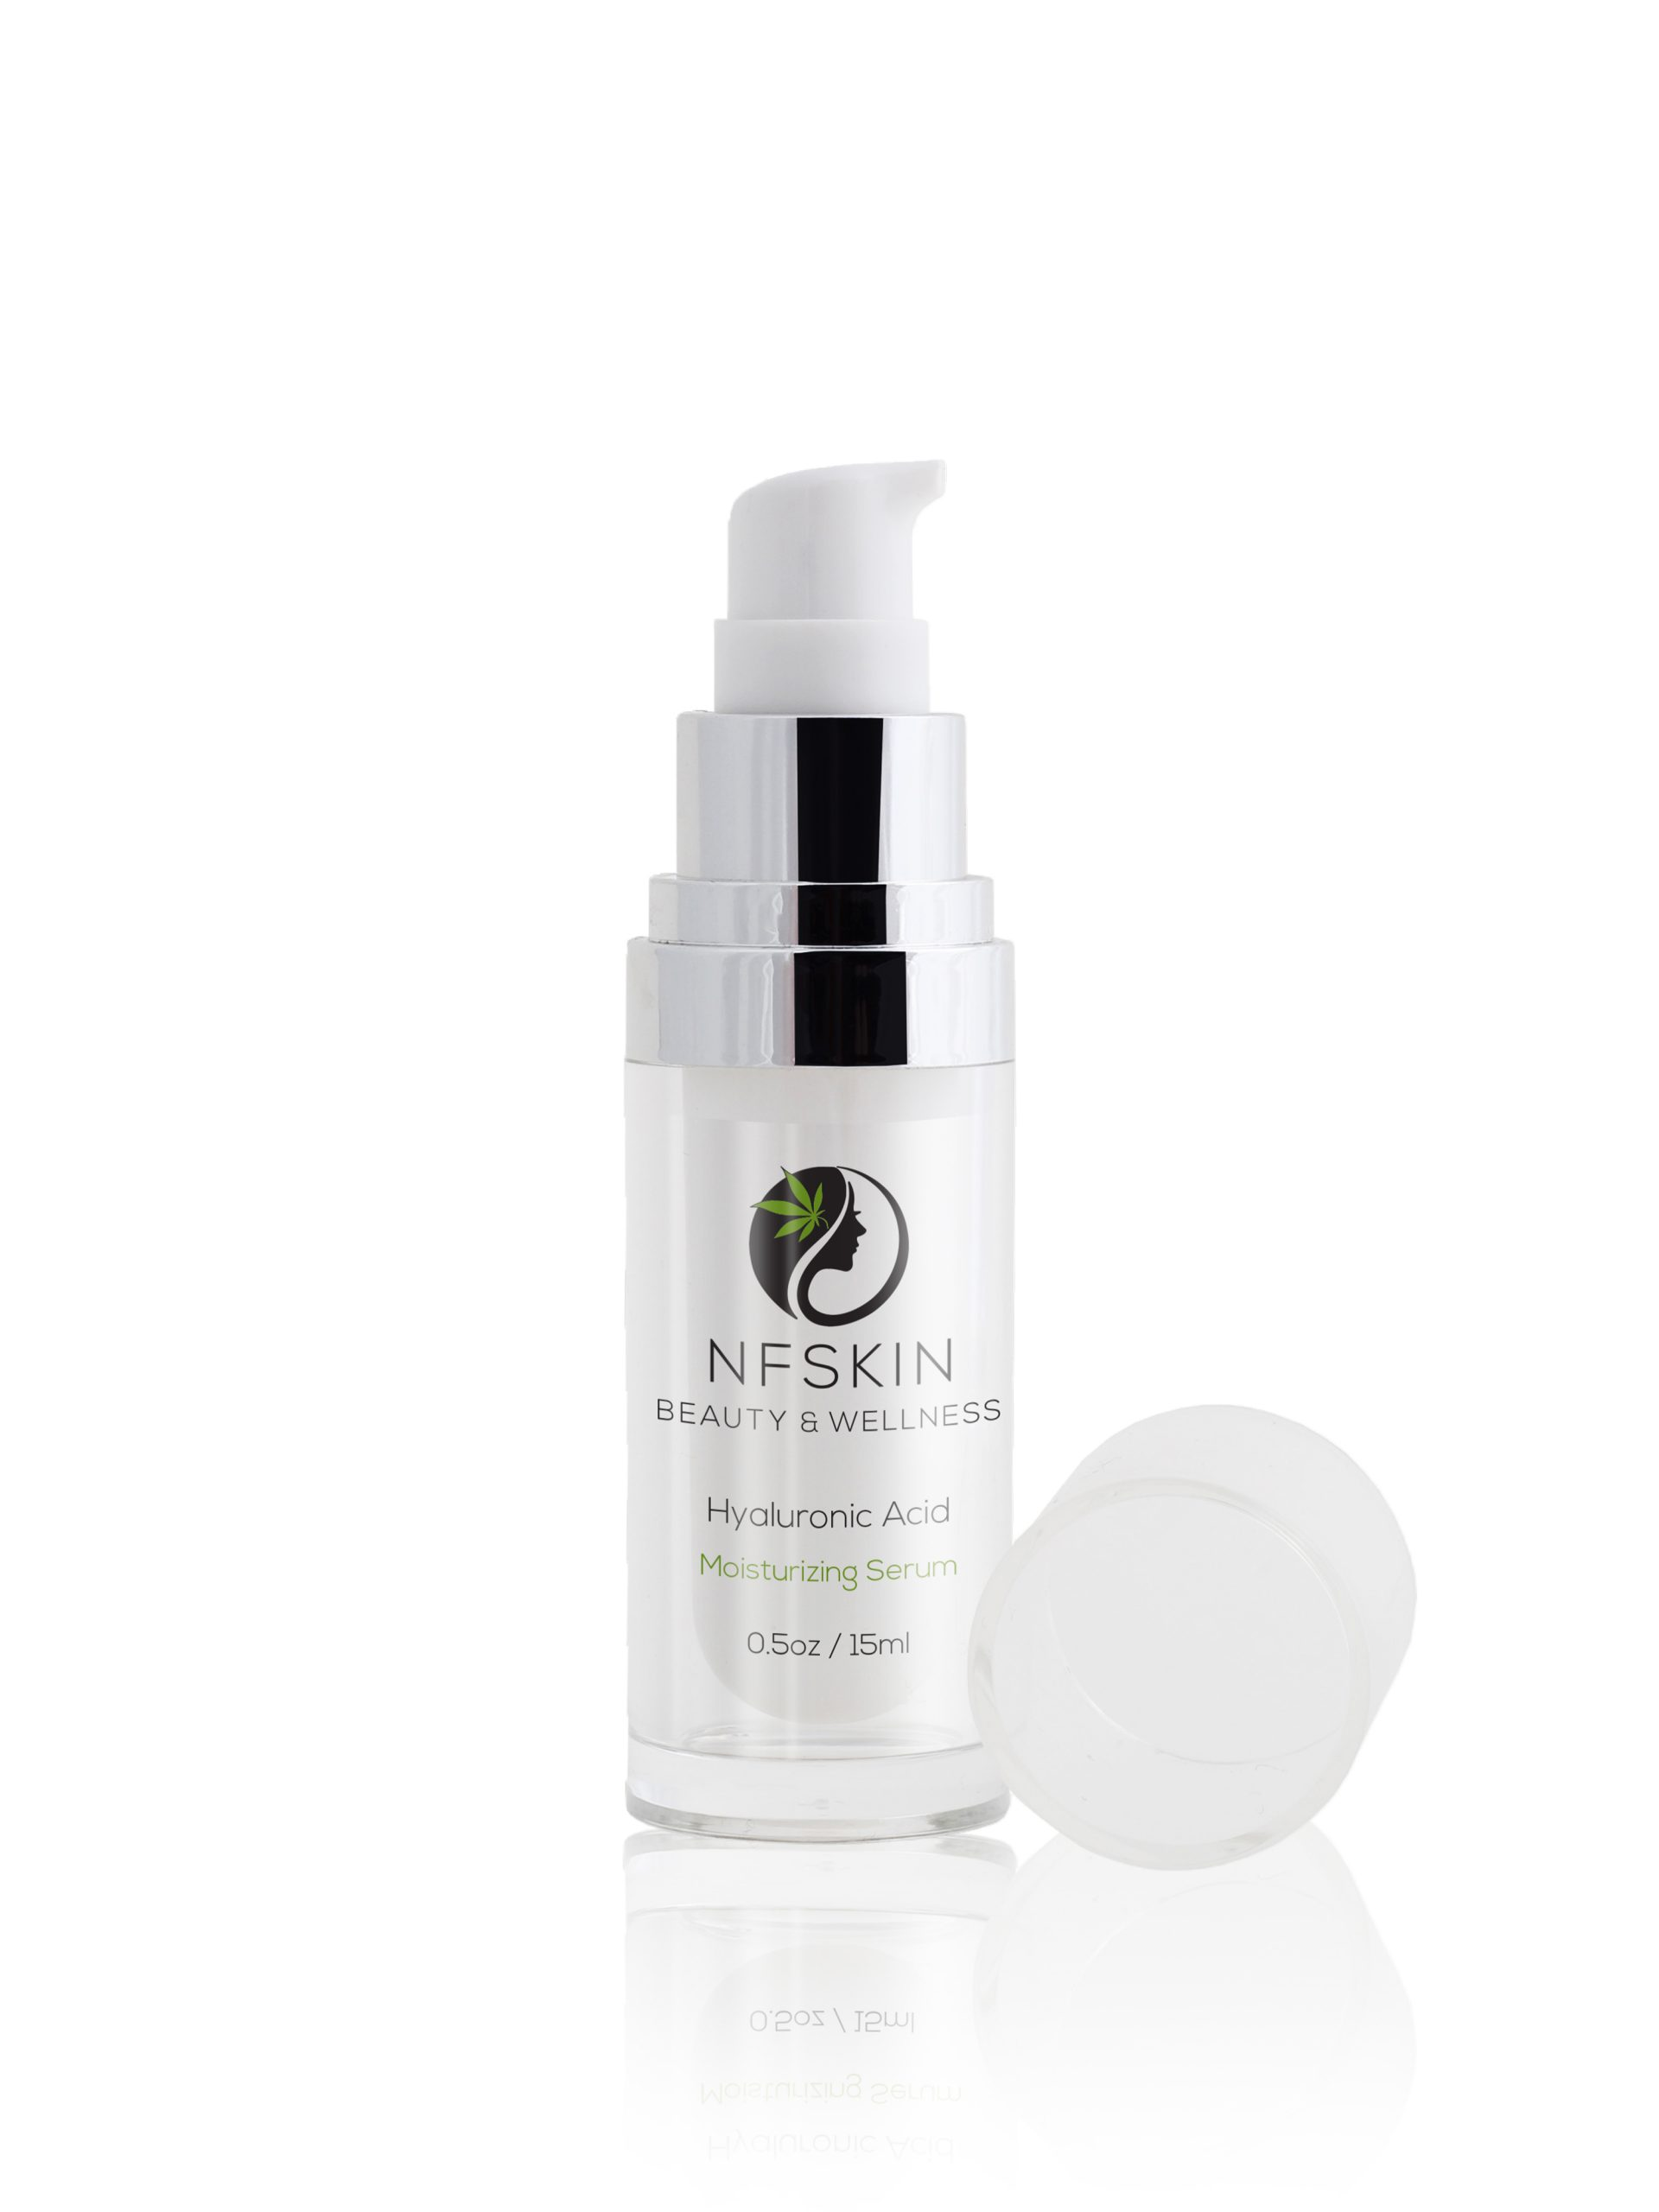 Hyaluronic Acid Moisturizing Serum